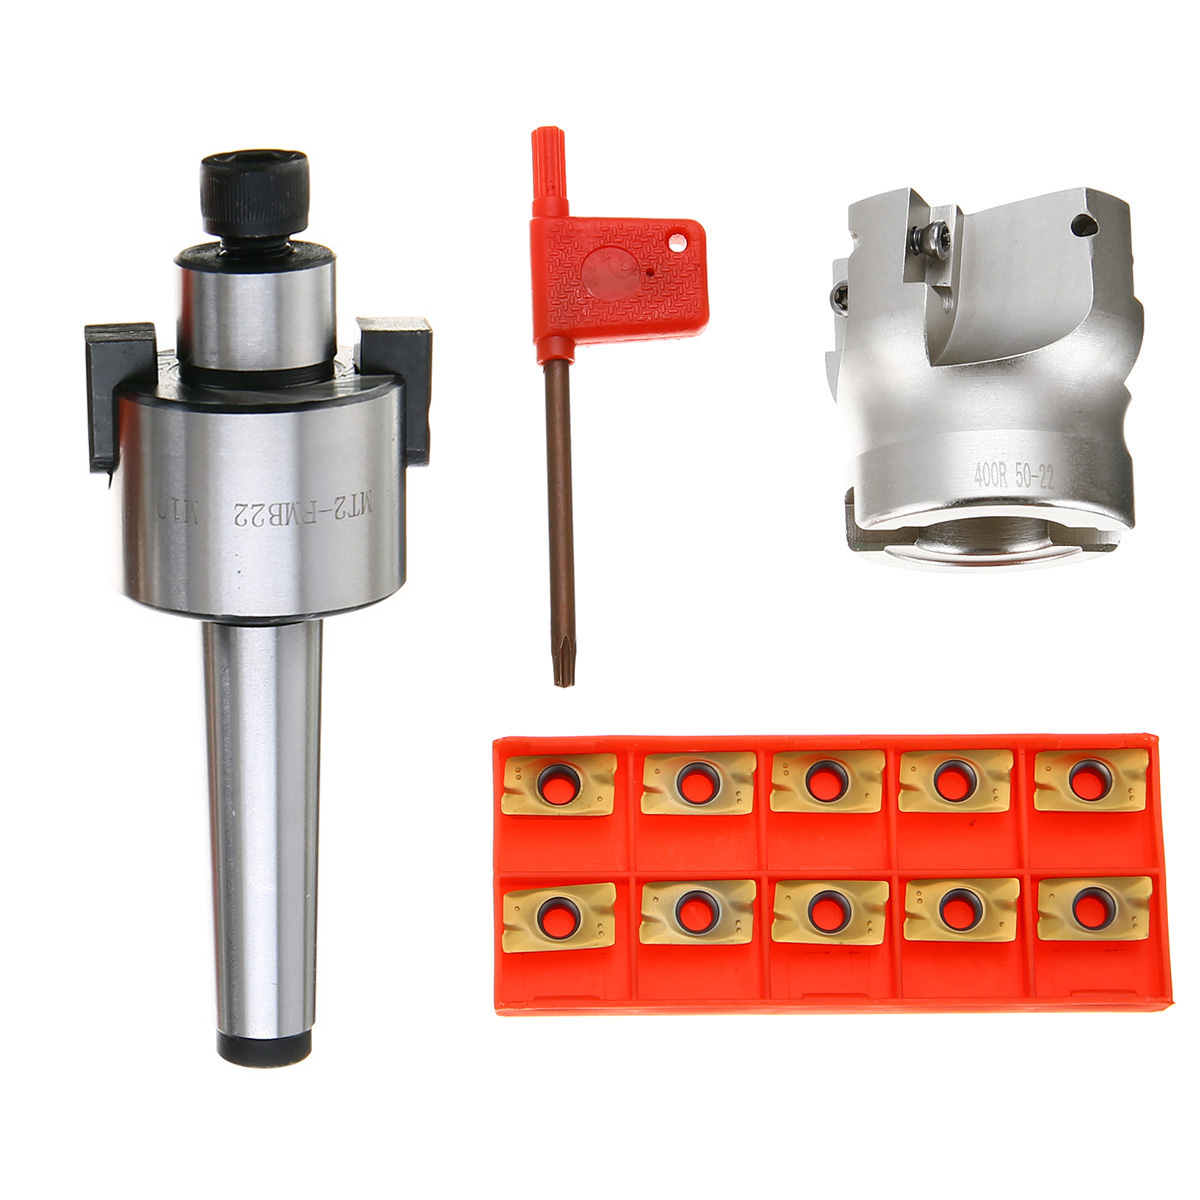 MT2 400R 50mm Face End Mill Cutter 4 Flutes + 10pcs APMT1604 Carbide Inserts with Wrench For Power Tool<br>